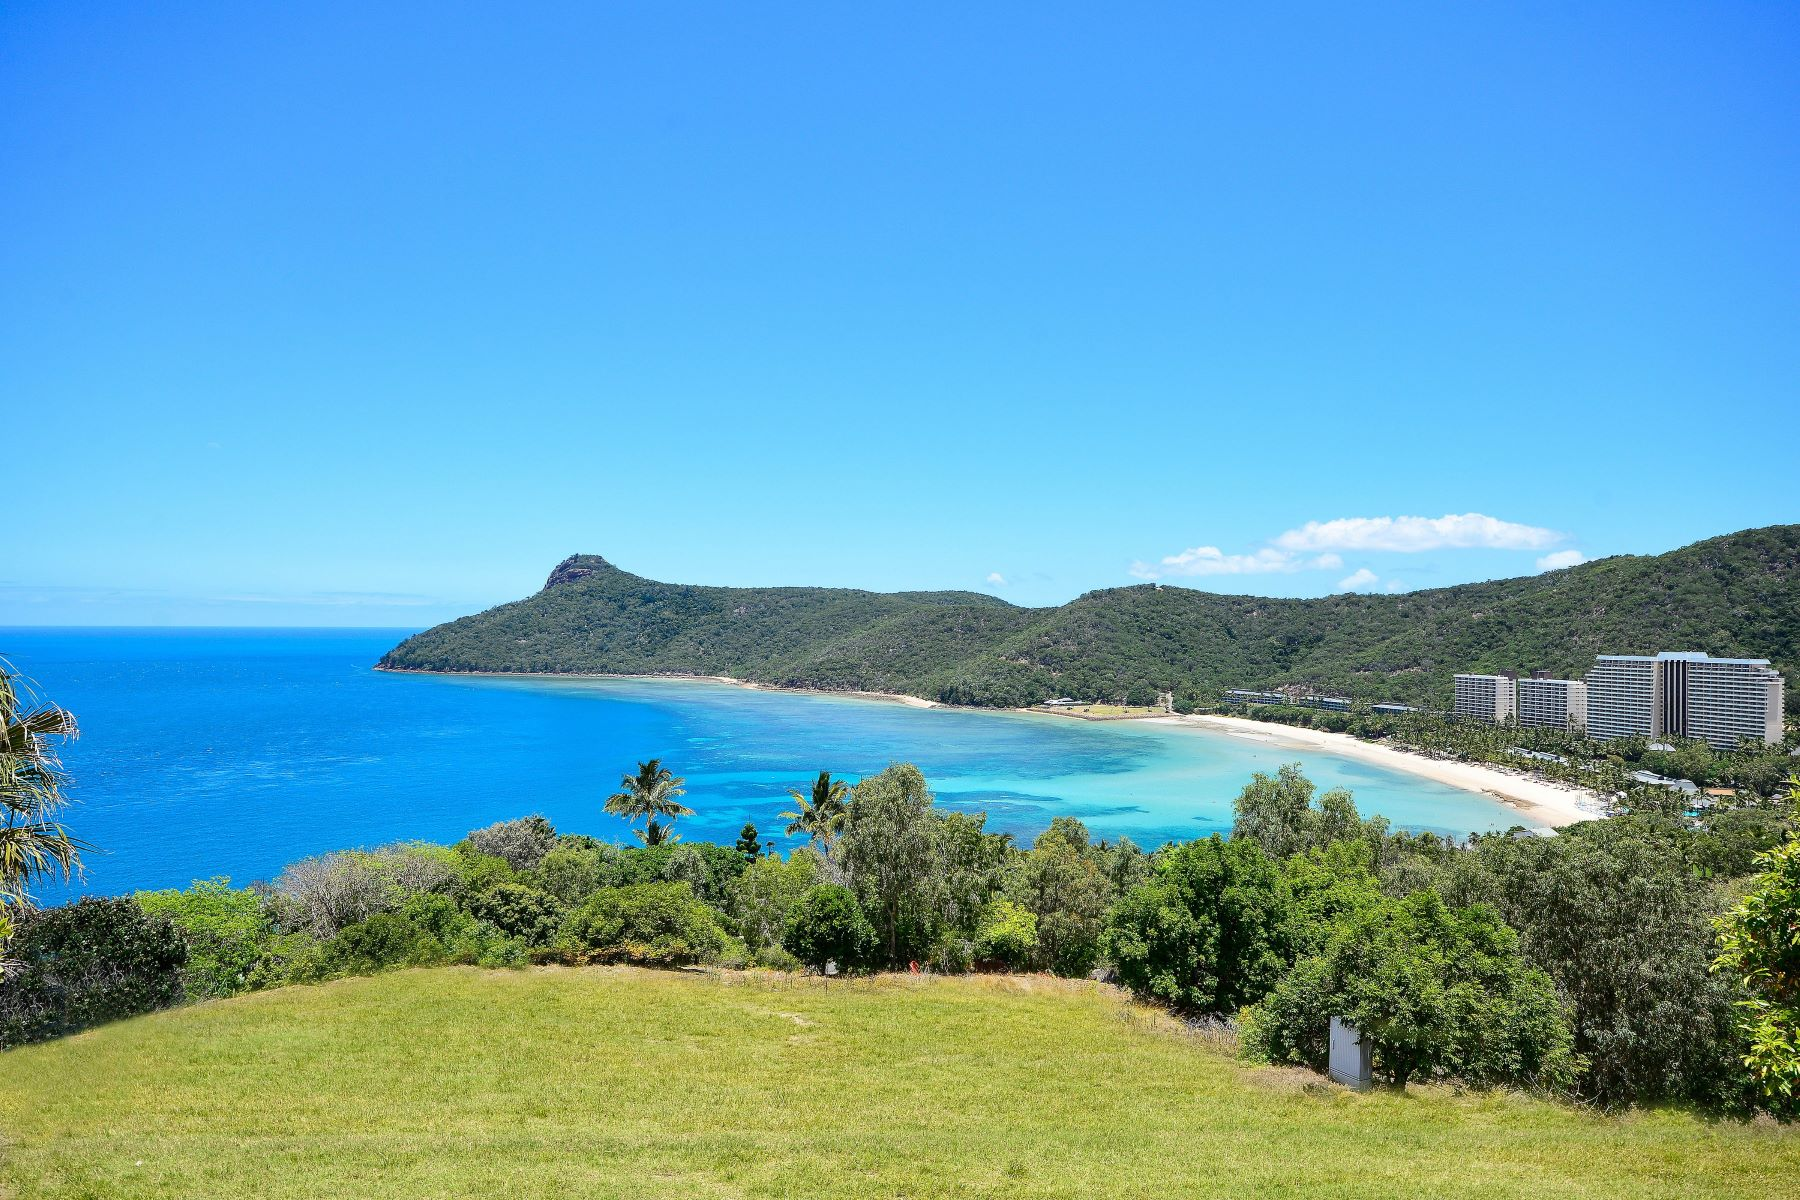 Land for Sale at 34 Melaleuca Drive 34 Melaleuca Drive Hamilton Island, Whitsundays, Queensland, 4803 Australia